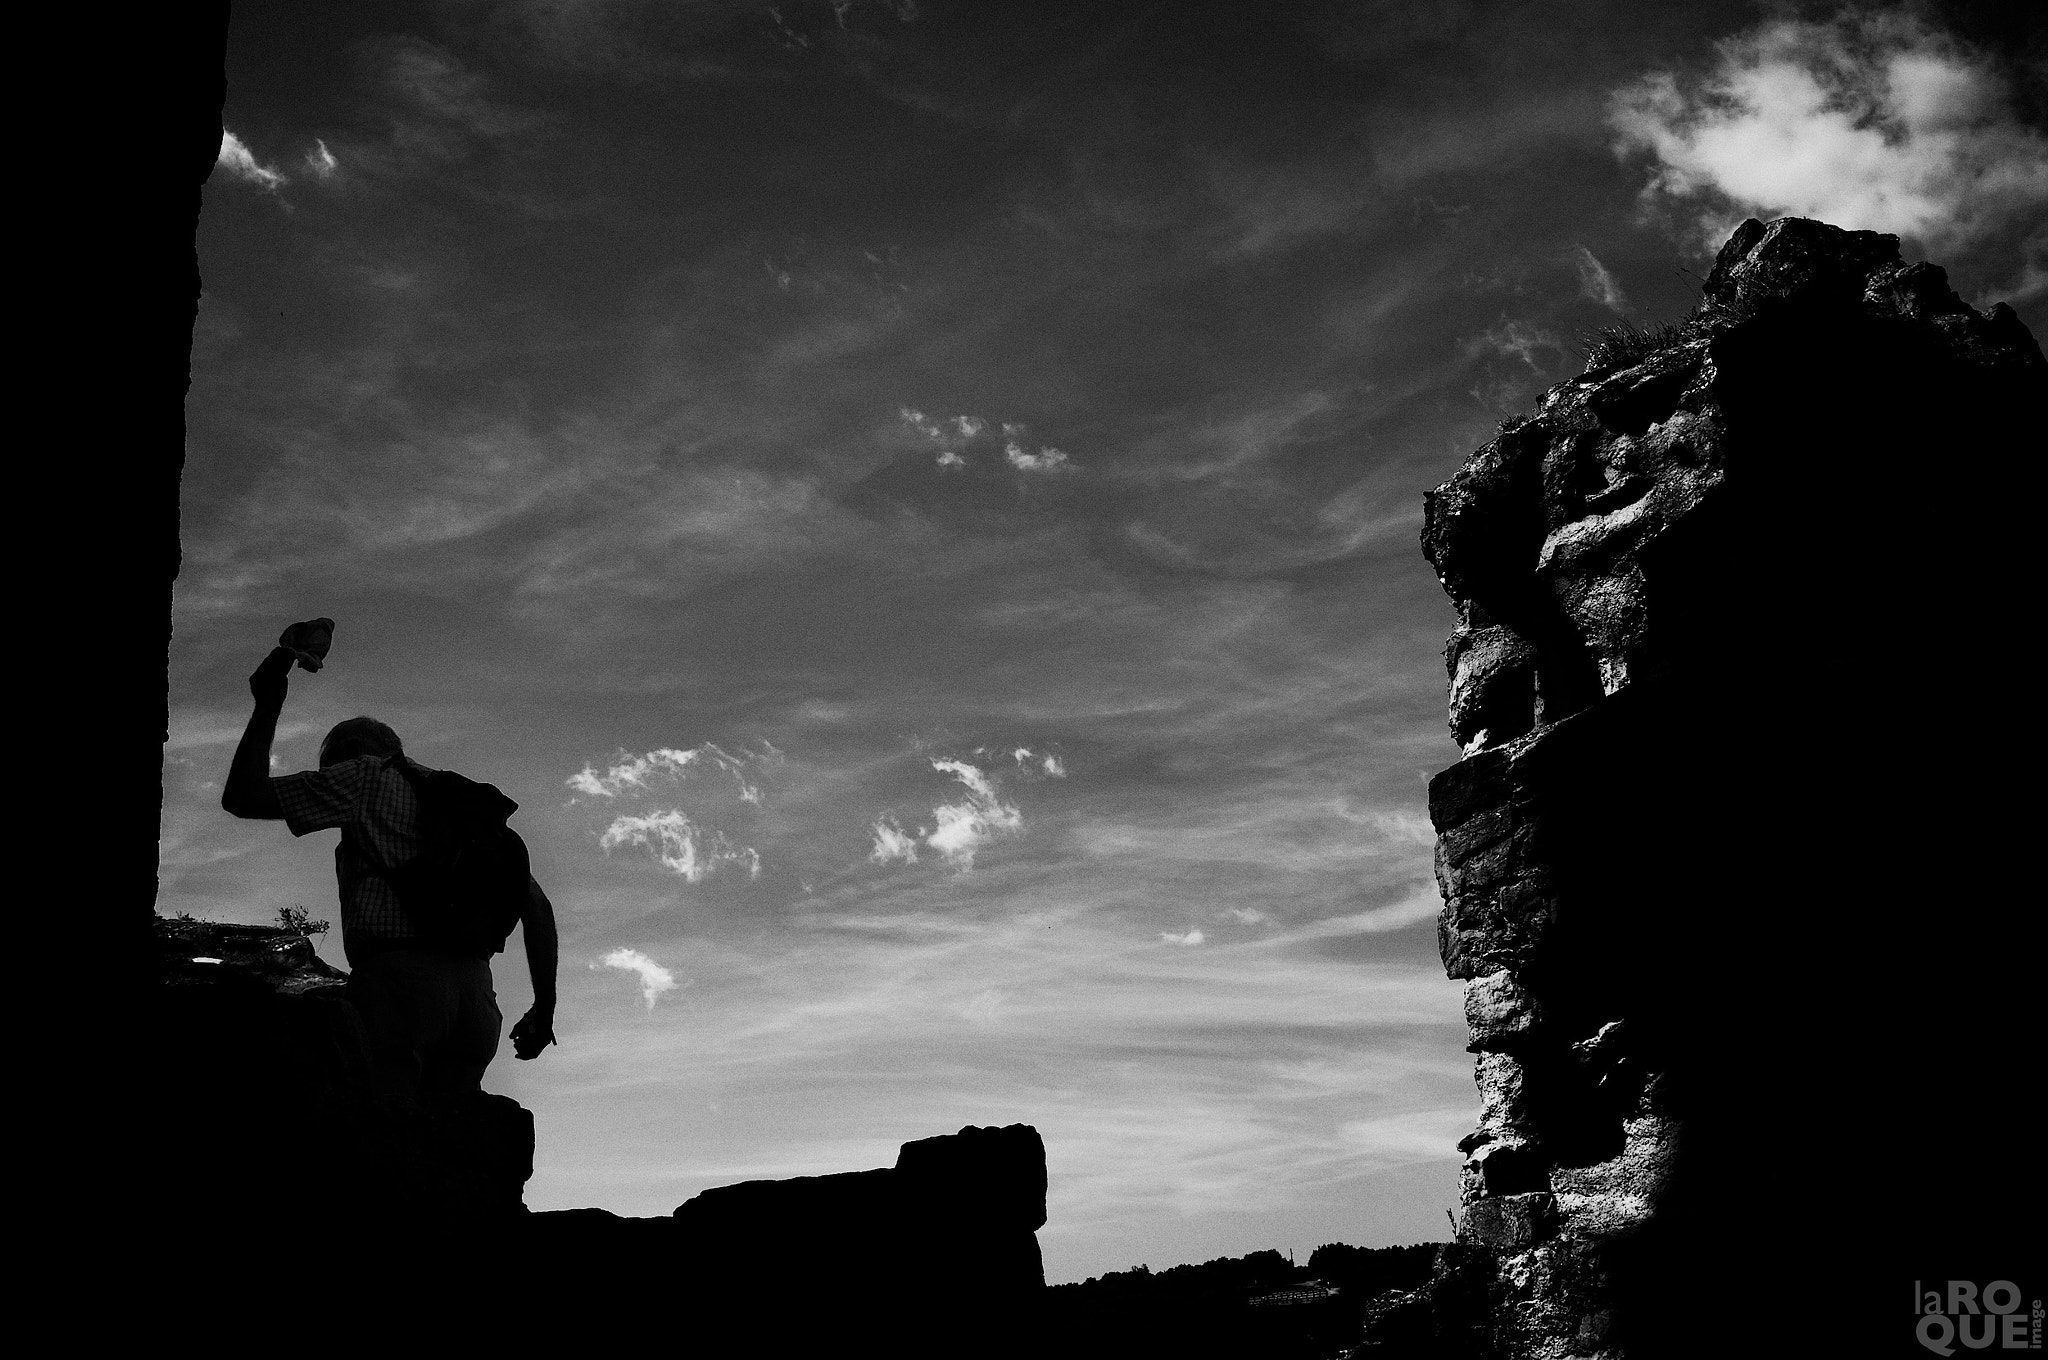 Photograph man in ruins by Patrick La Roque on 500px